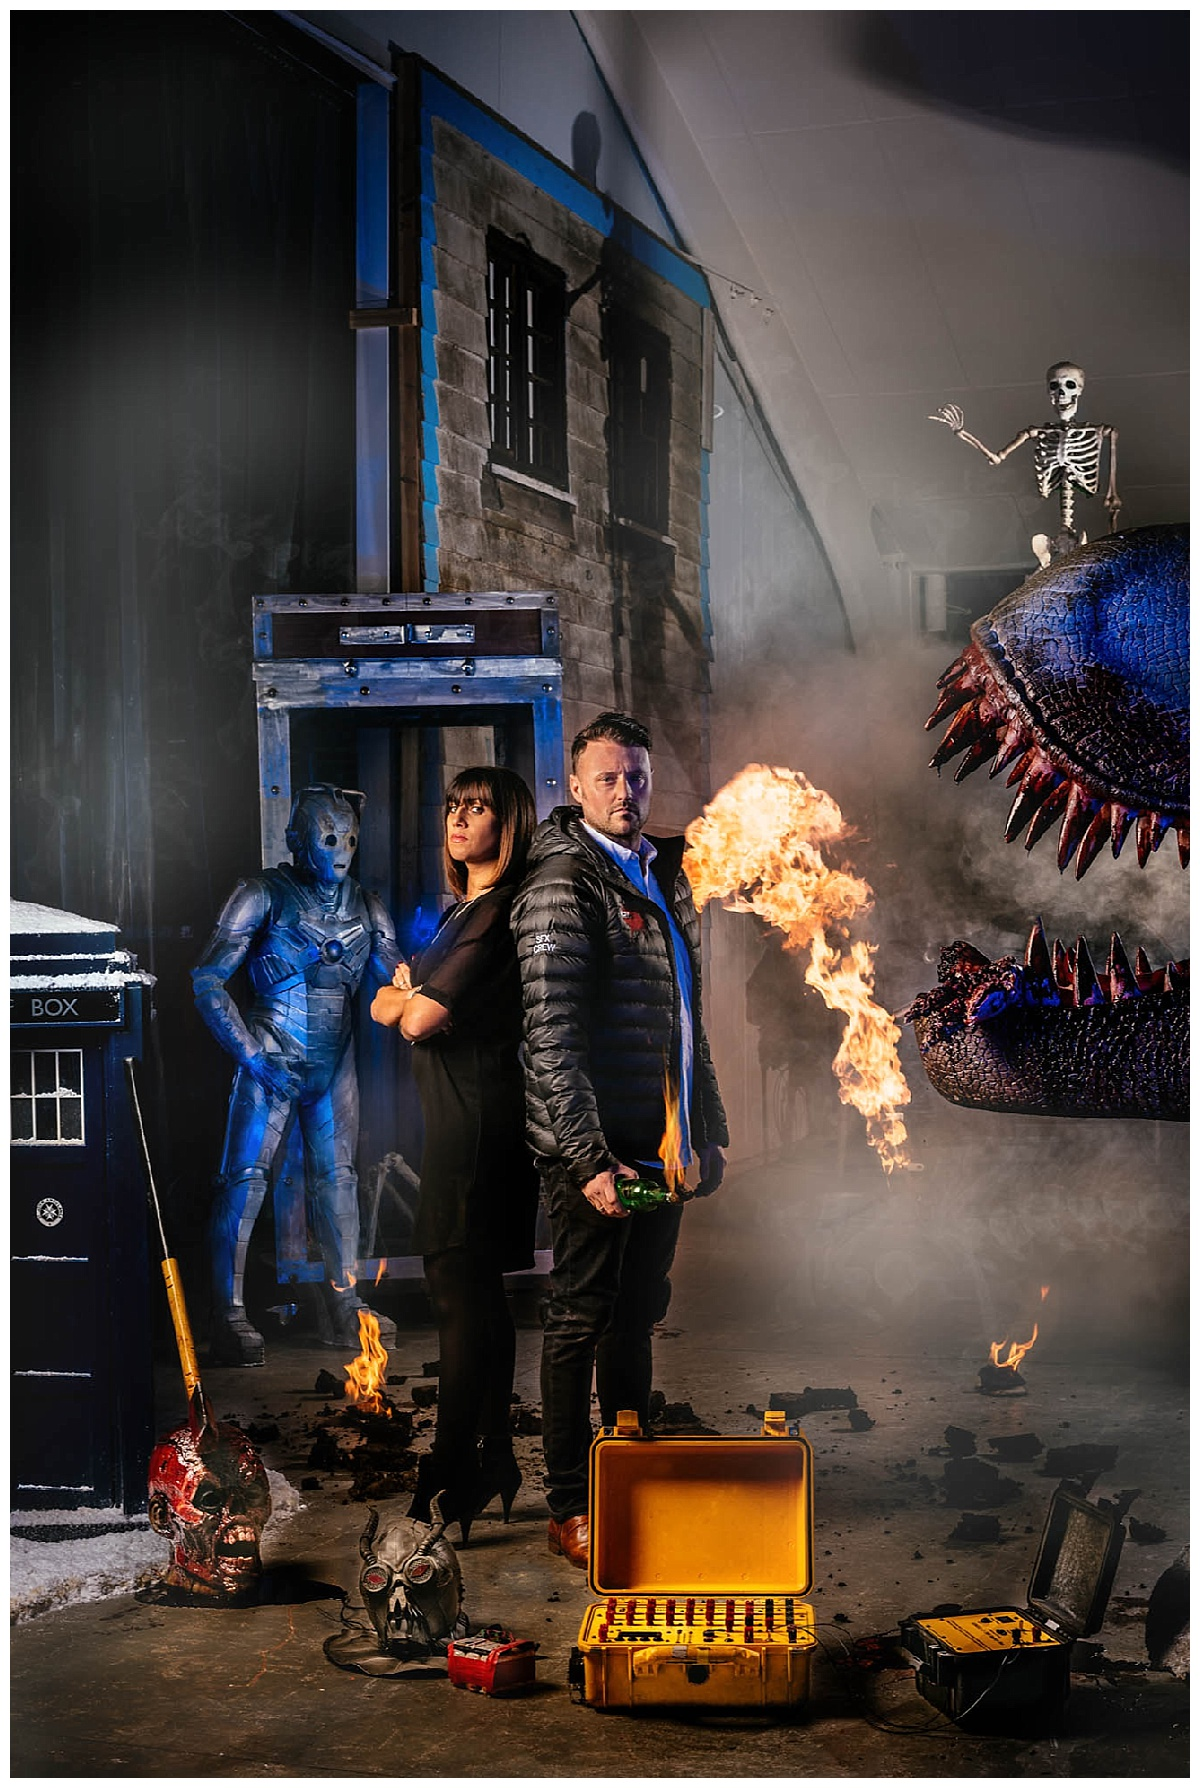 A photo of two special effects experts surrounded by special effects